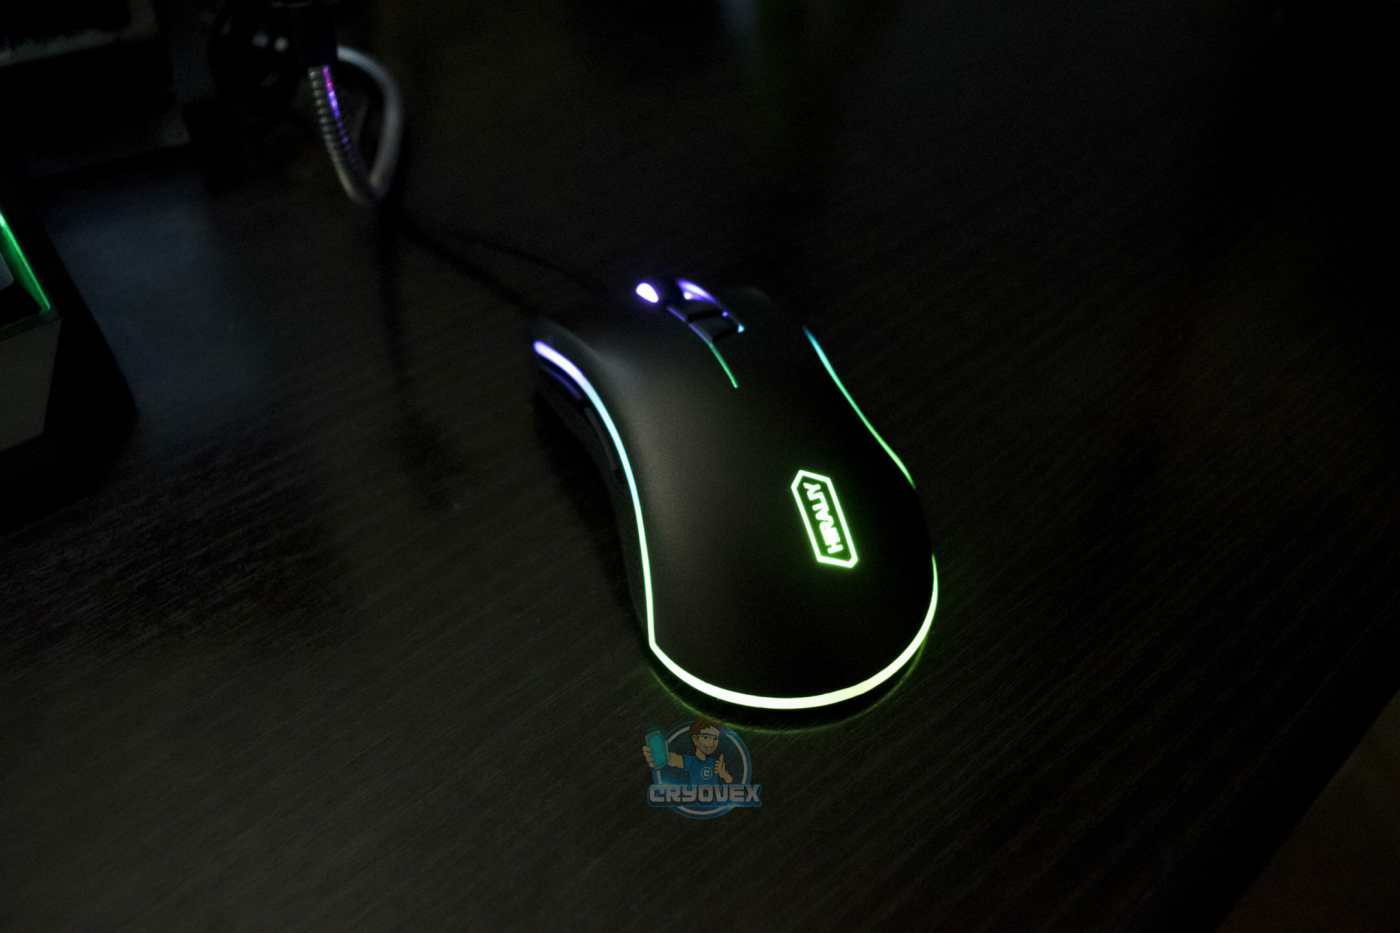 Hiraliy F300 best gaming mouse under 25 Martin Ottawa Canada Android